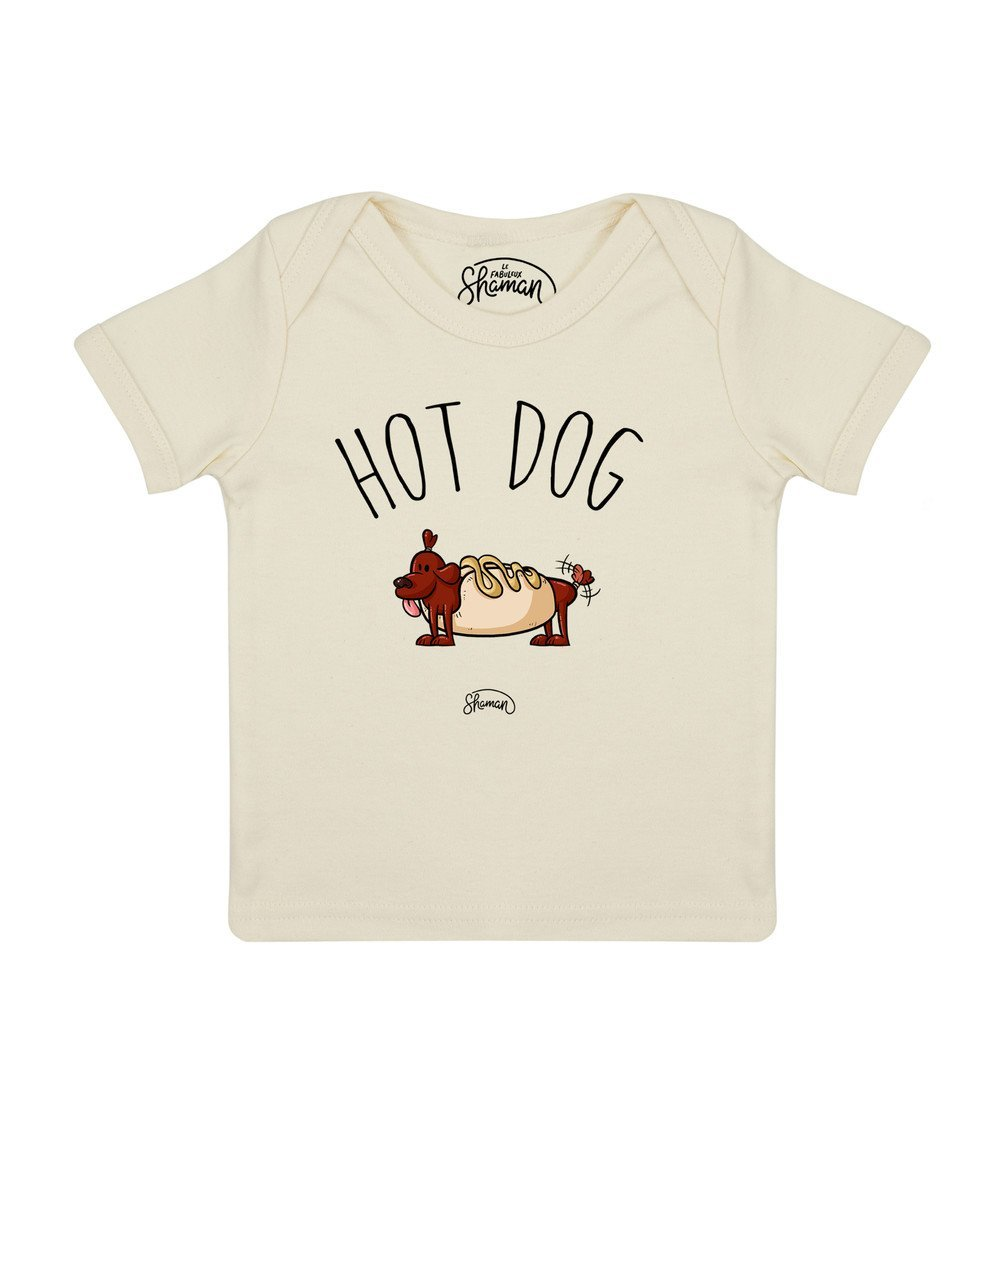 Tee shirt Hot dog